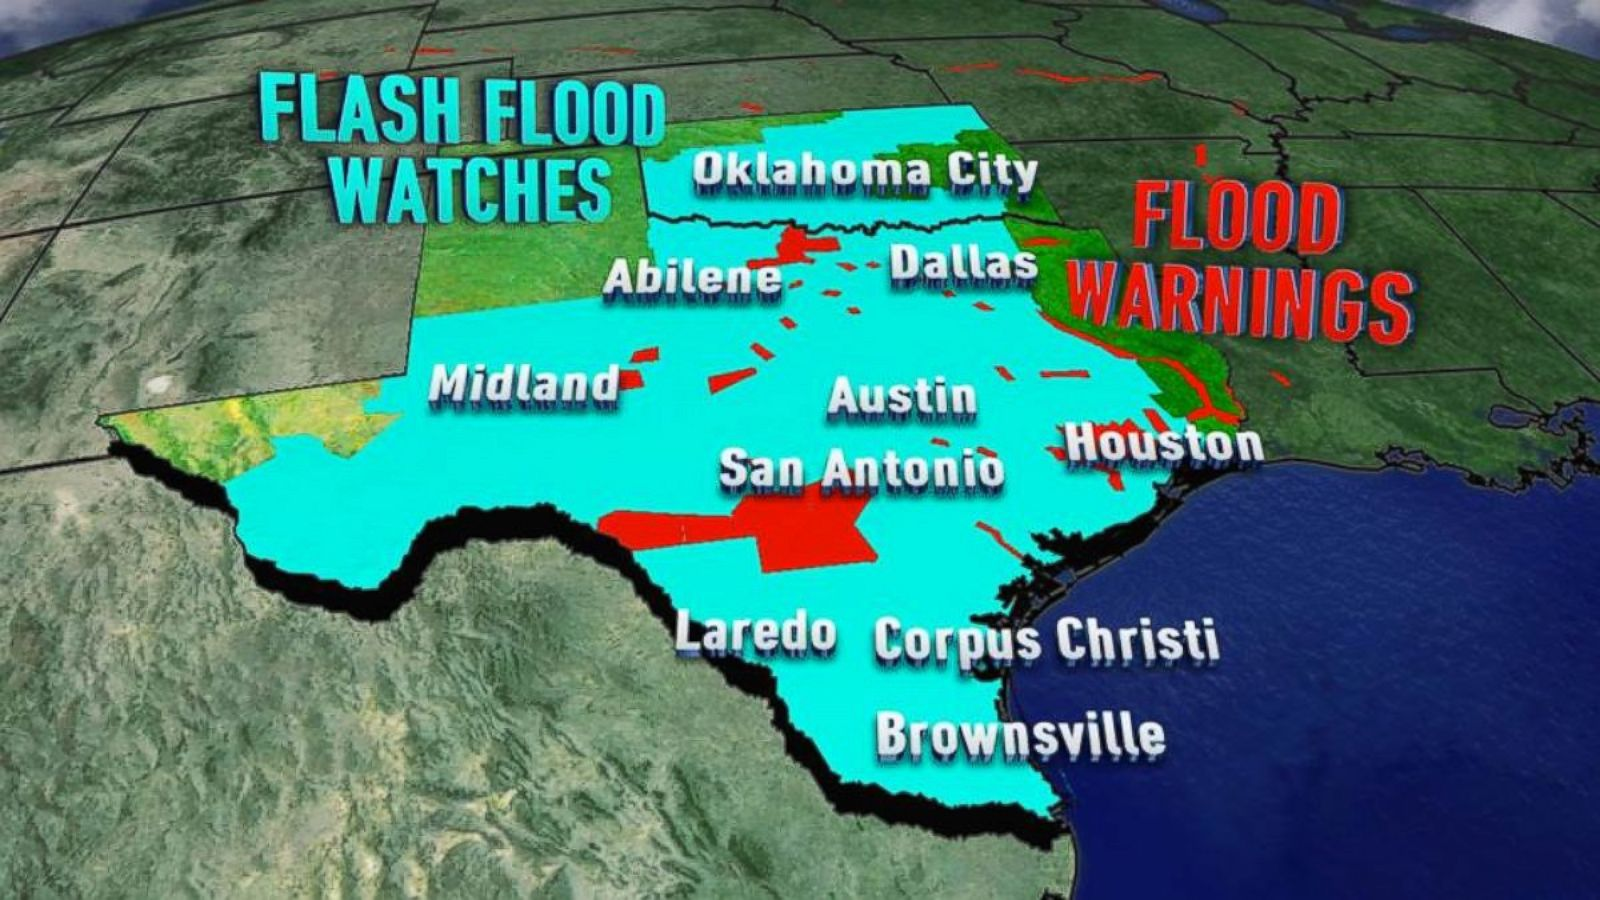 More Rain on the Way for Flood-Ravaged Texas; zos River ... San Antonio Weather Map on weather paris france map, weather united states map, weather jakarta map, radar weather map, weather orlando map, weather virginia map, weather ohio map, weather texas map, weather dallas map, weather springfield il map, weather boston map, weather florida map, weather mobile map, weather chicago map, weather tucson map, weather california map, weather las vegas map, weather colorado map, weather houston map, weather edmonton alberta map,